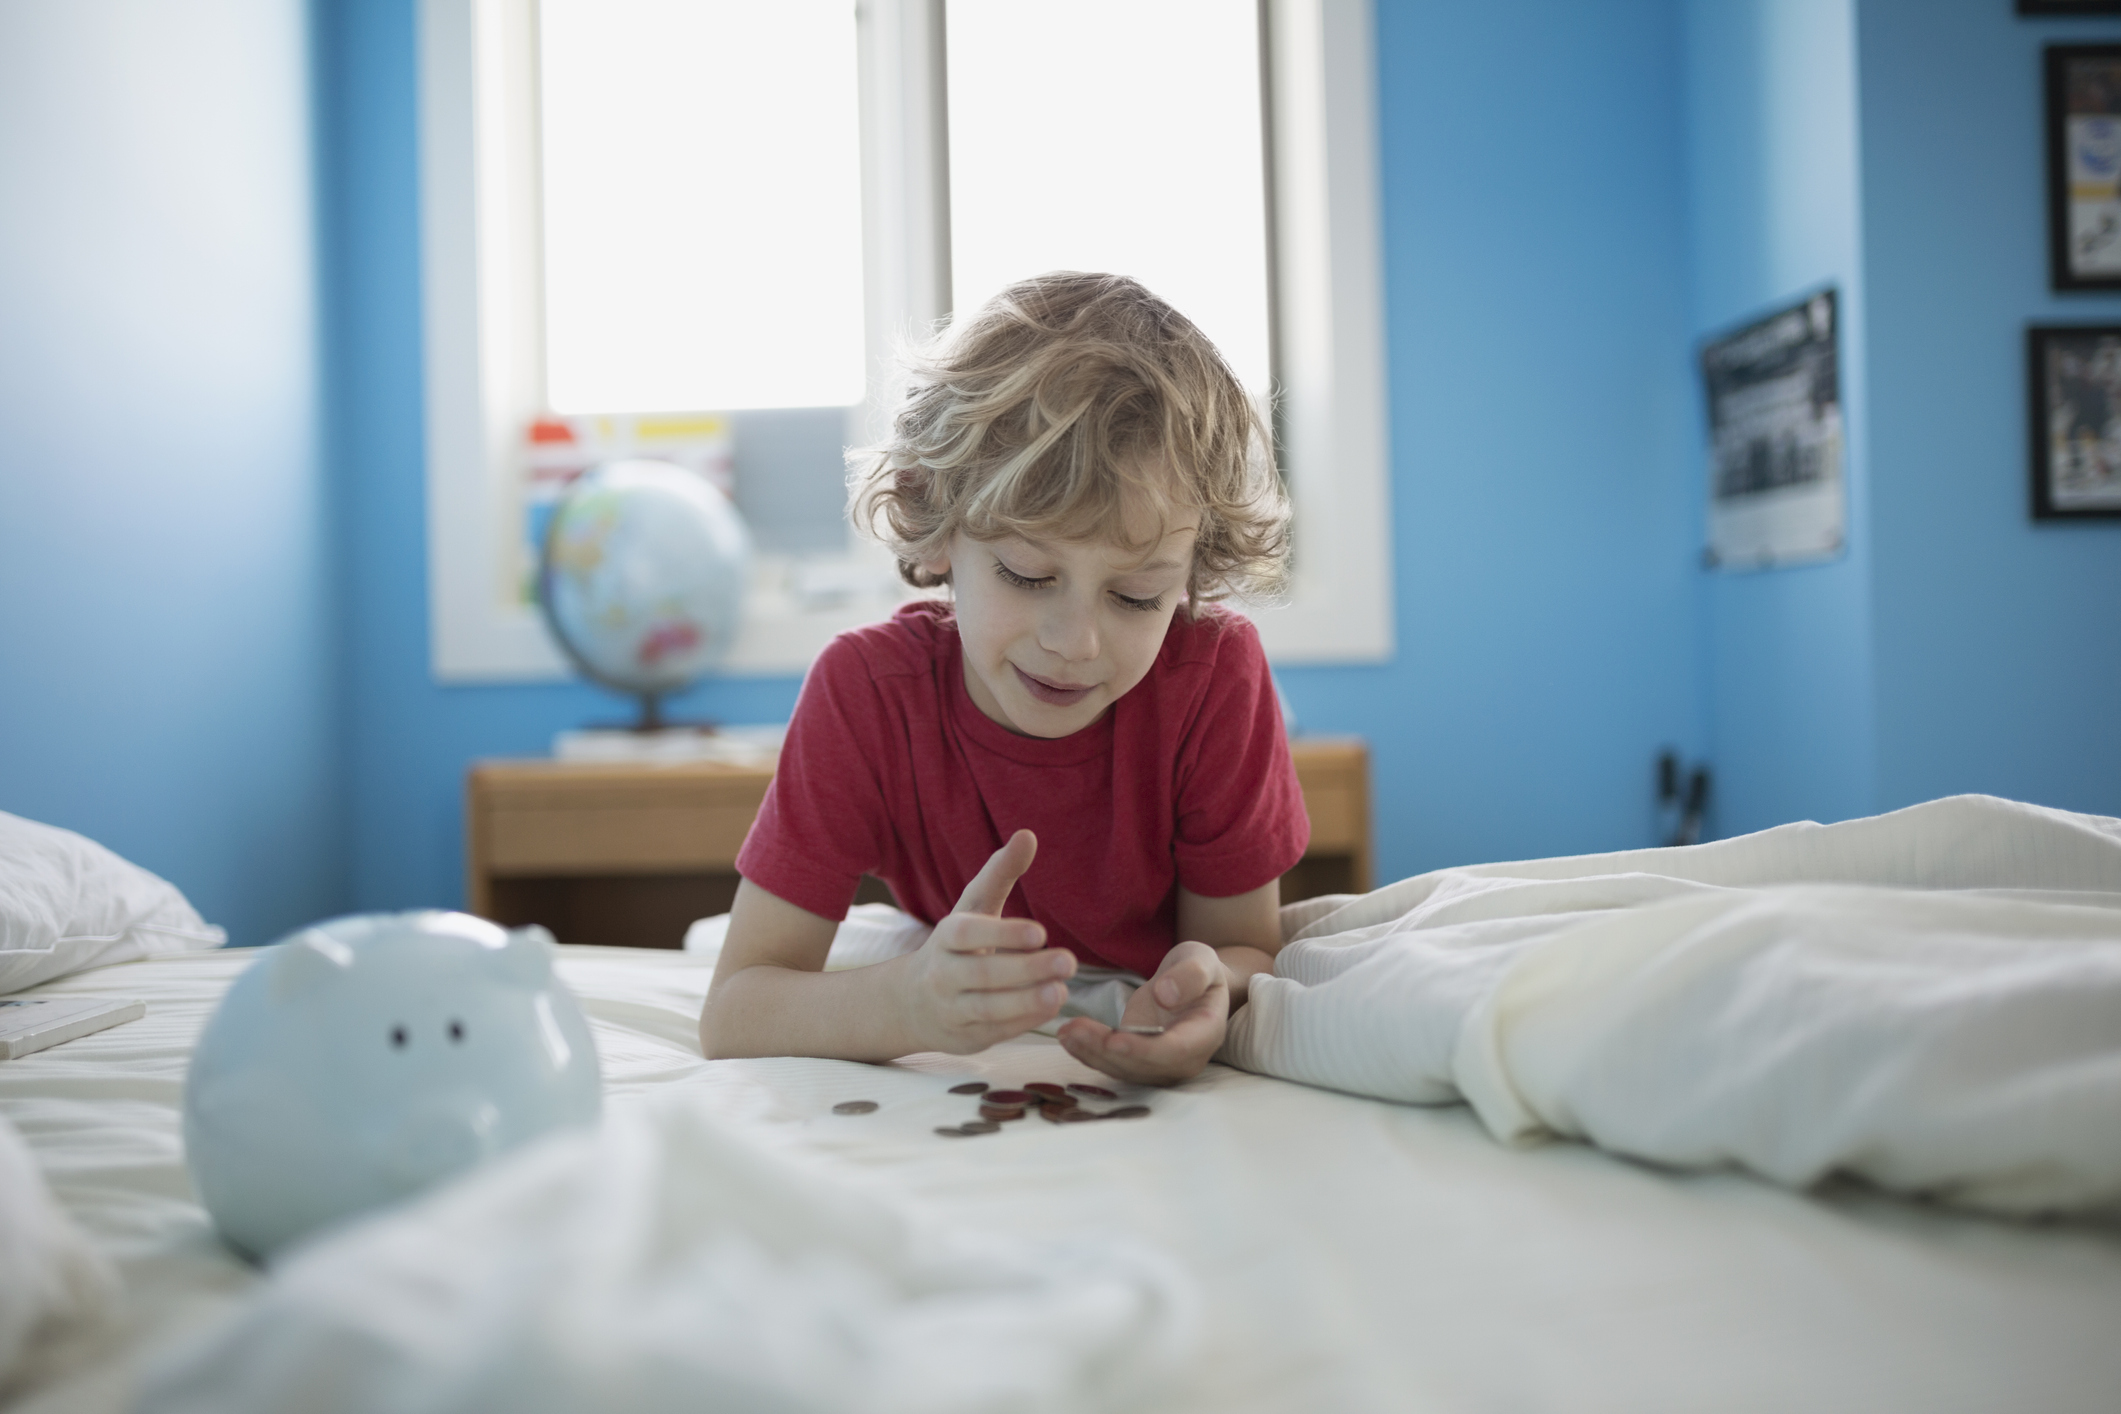 Top 3 money lessons to teach your kids